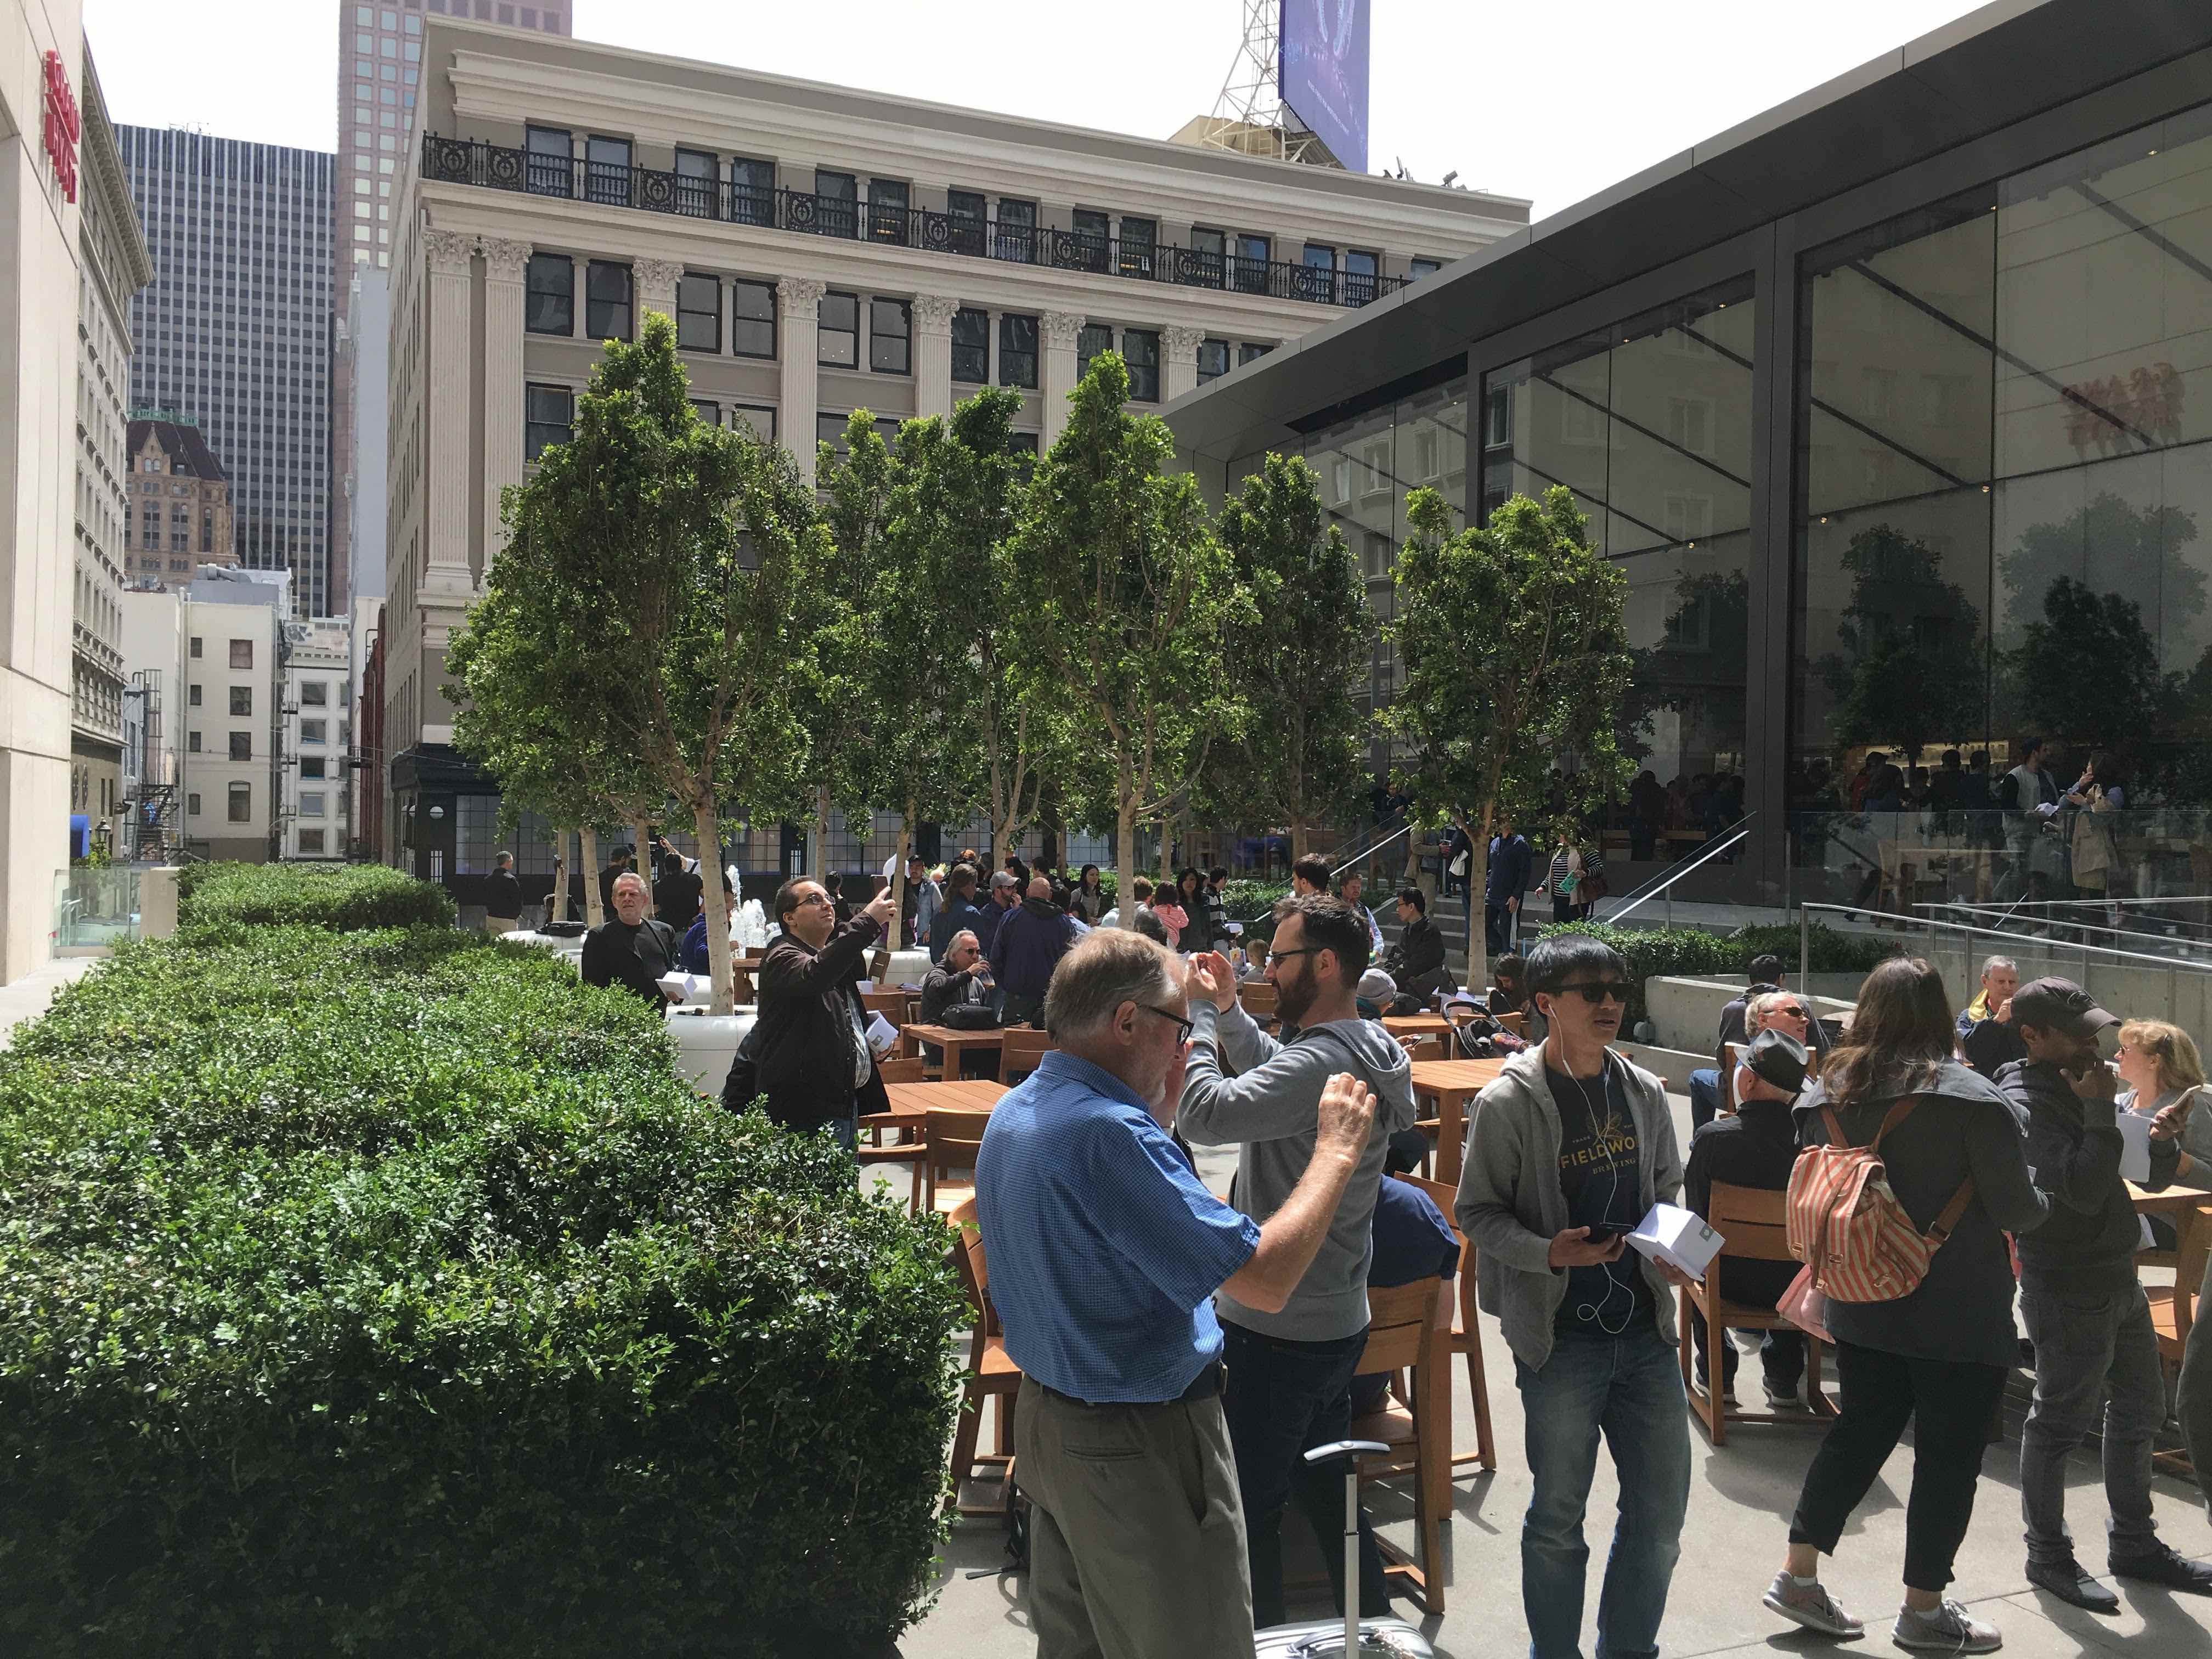 The Plaza at the new Apple Store in San Francisco's Union Square neighborhood.